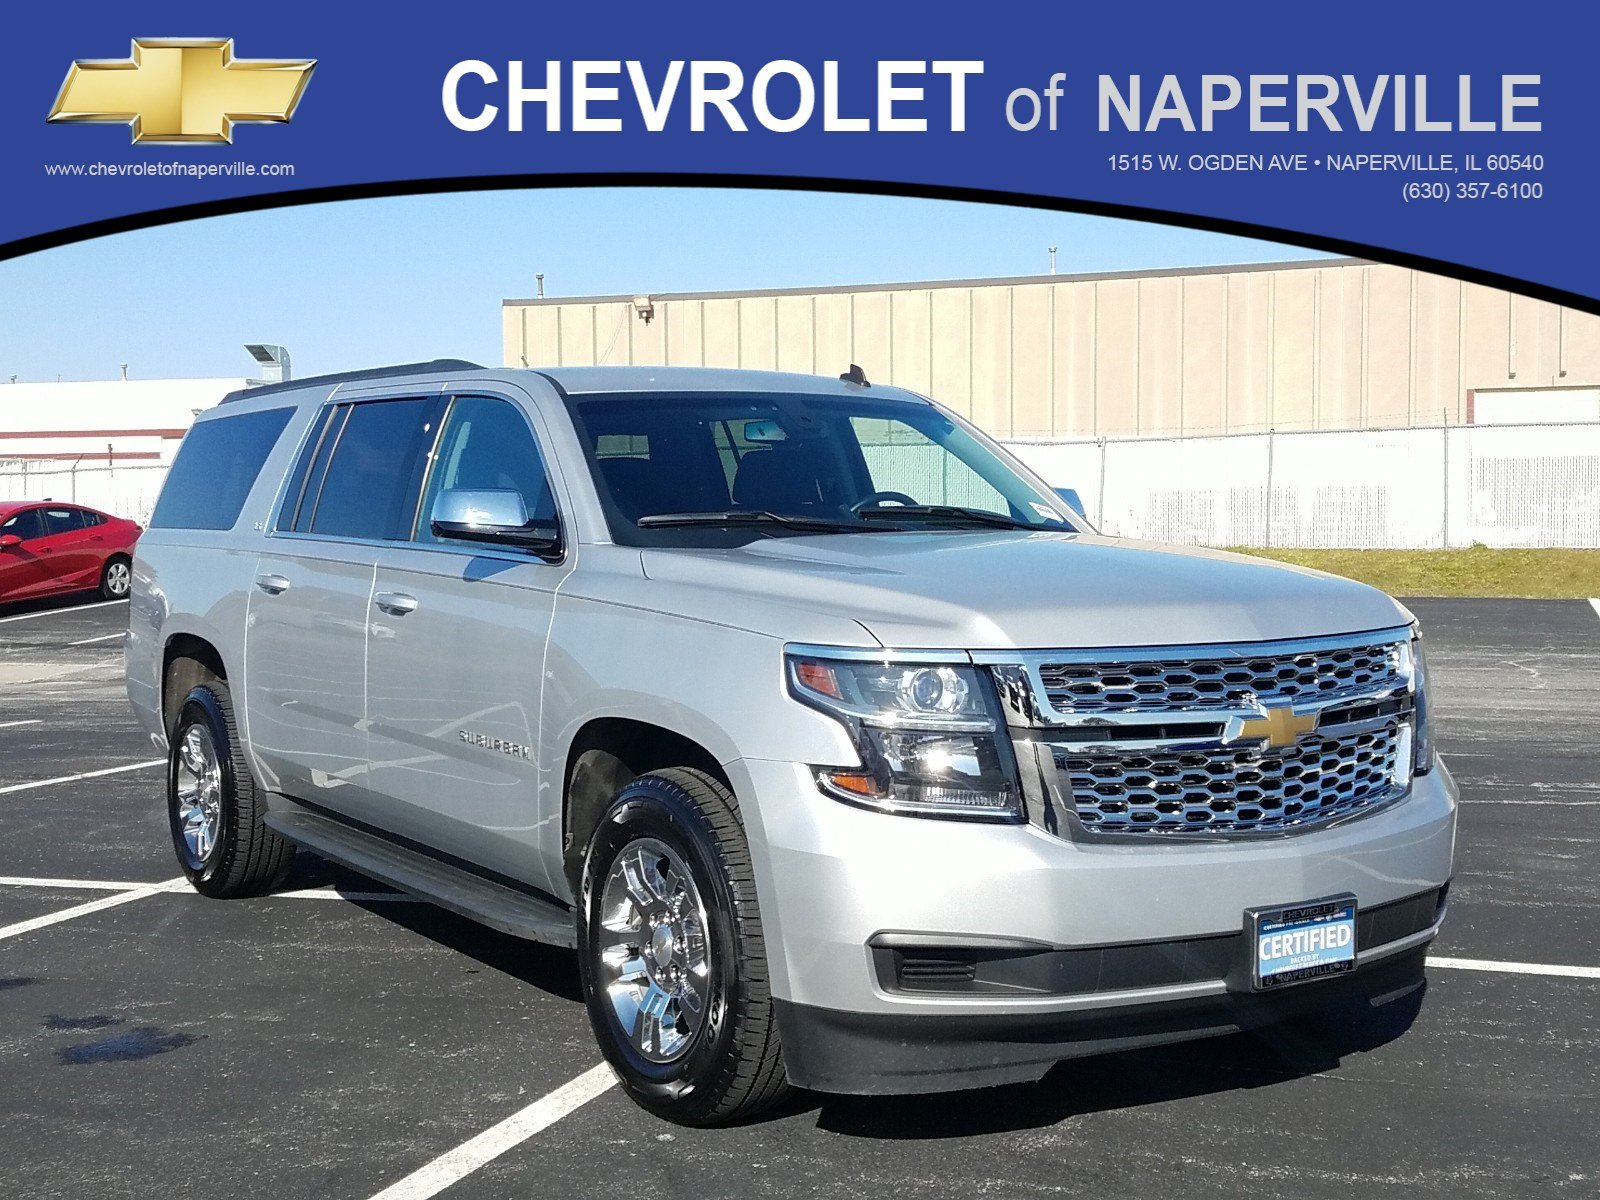 Certified Pre-Owned 2015 Chevrolet Suburban LS